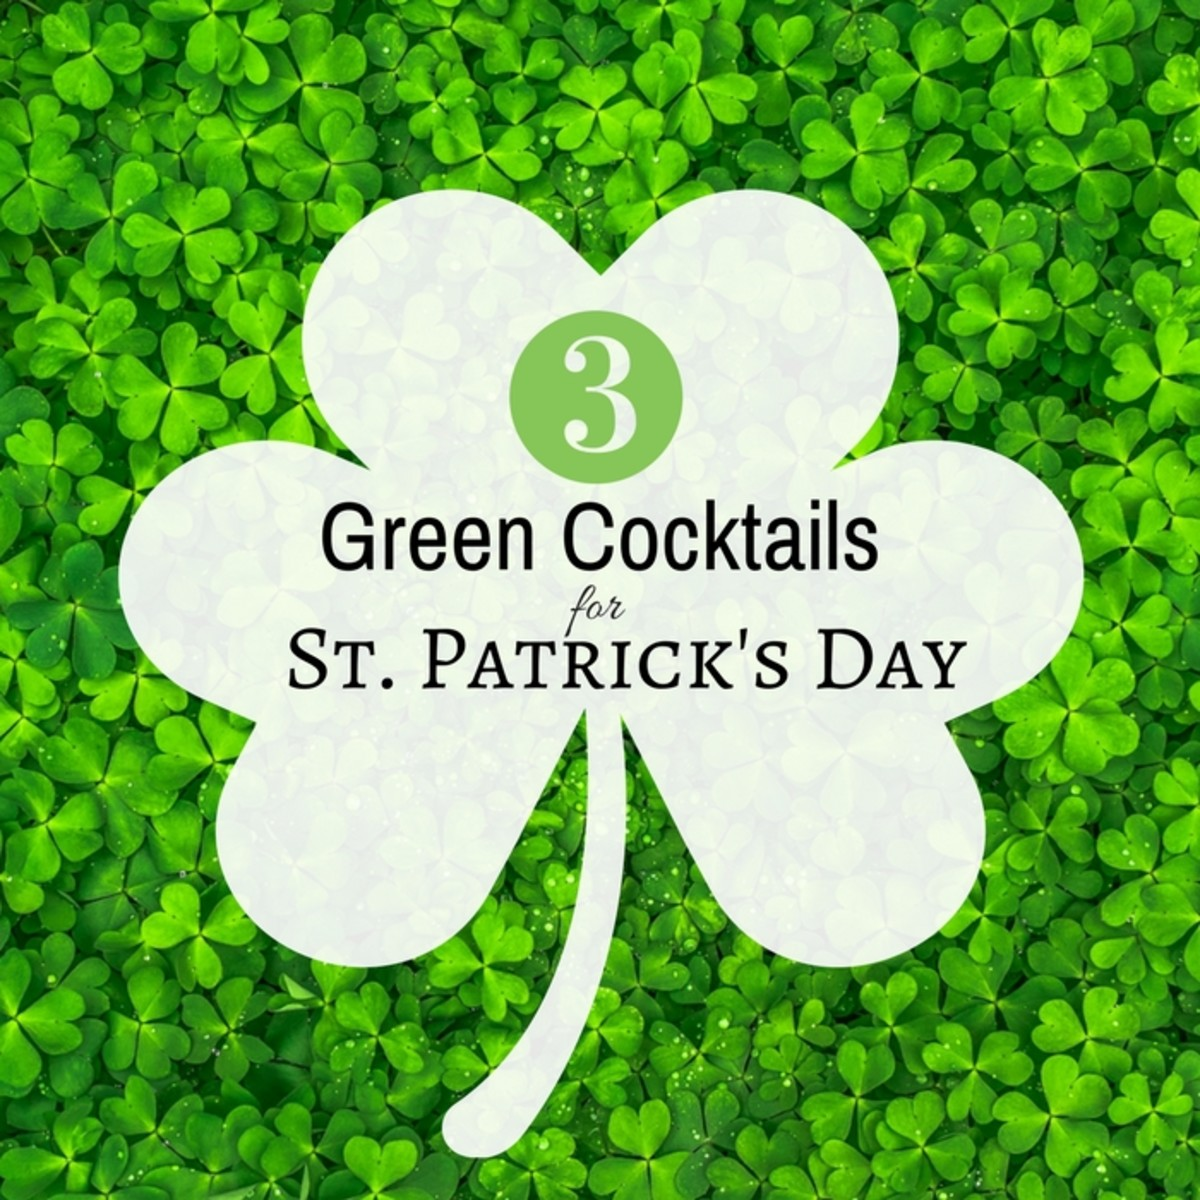 Green Cocktails for St. Patrick's Day2